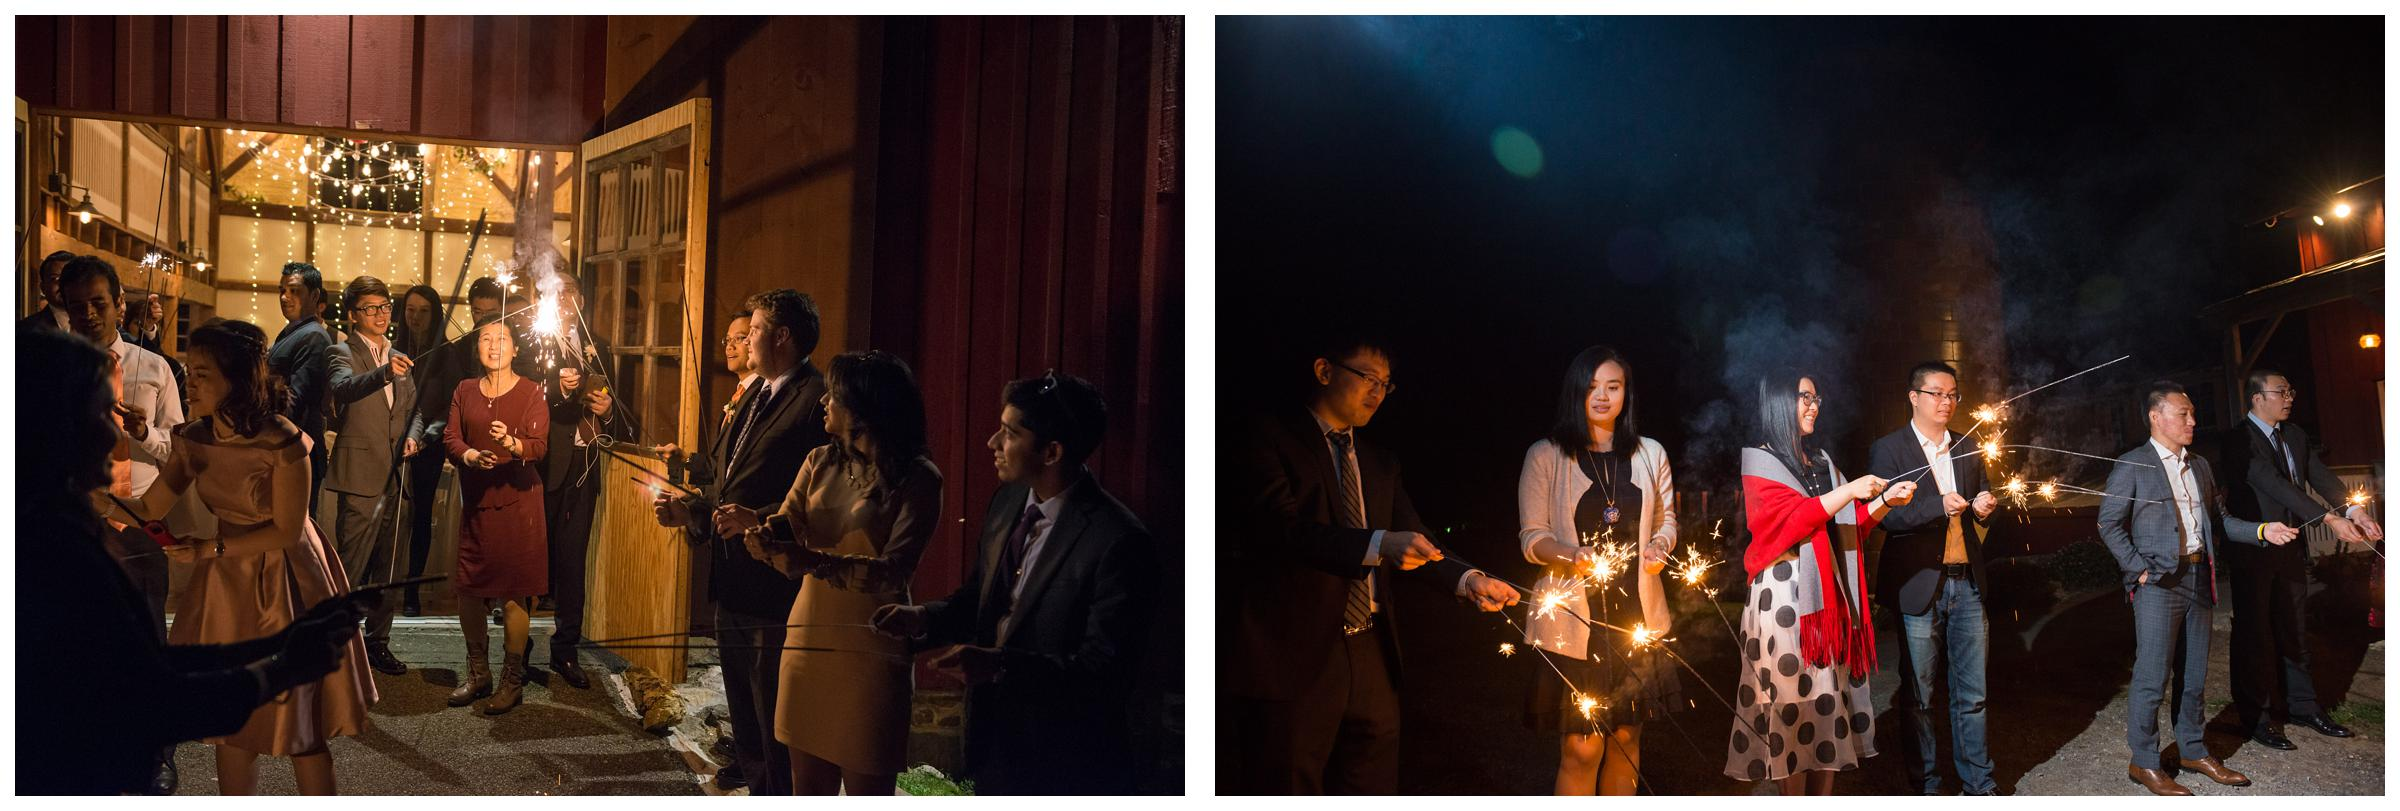 Wedding guests light sparklers in preparation for the bride and groom's grand exit.